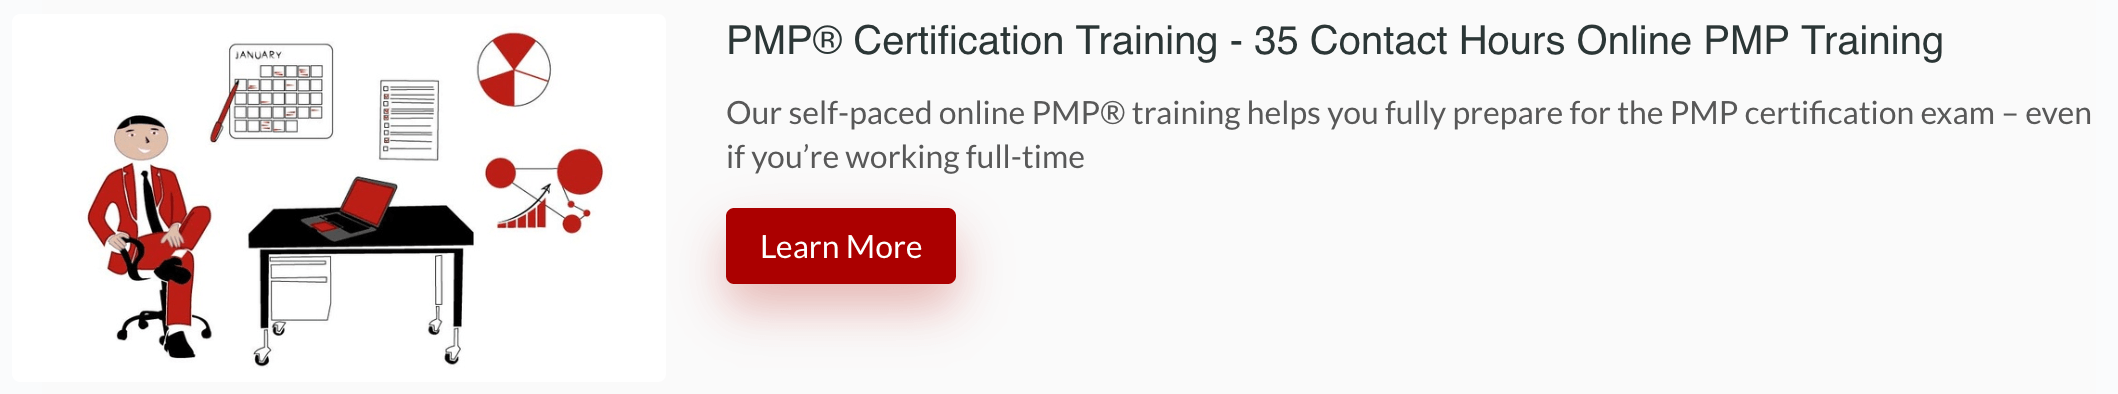 Screen-Shot-2019-07-02-at-15.30.39 PMP Exam Changes - What is Changing in PMP Exam Content?